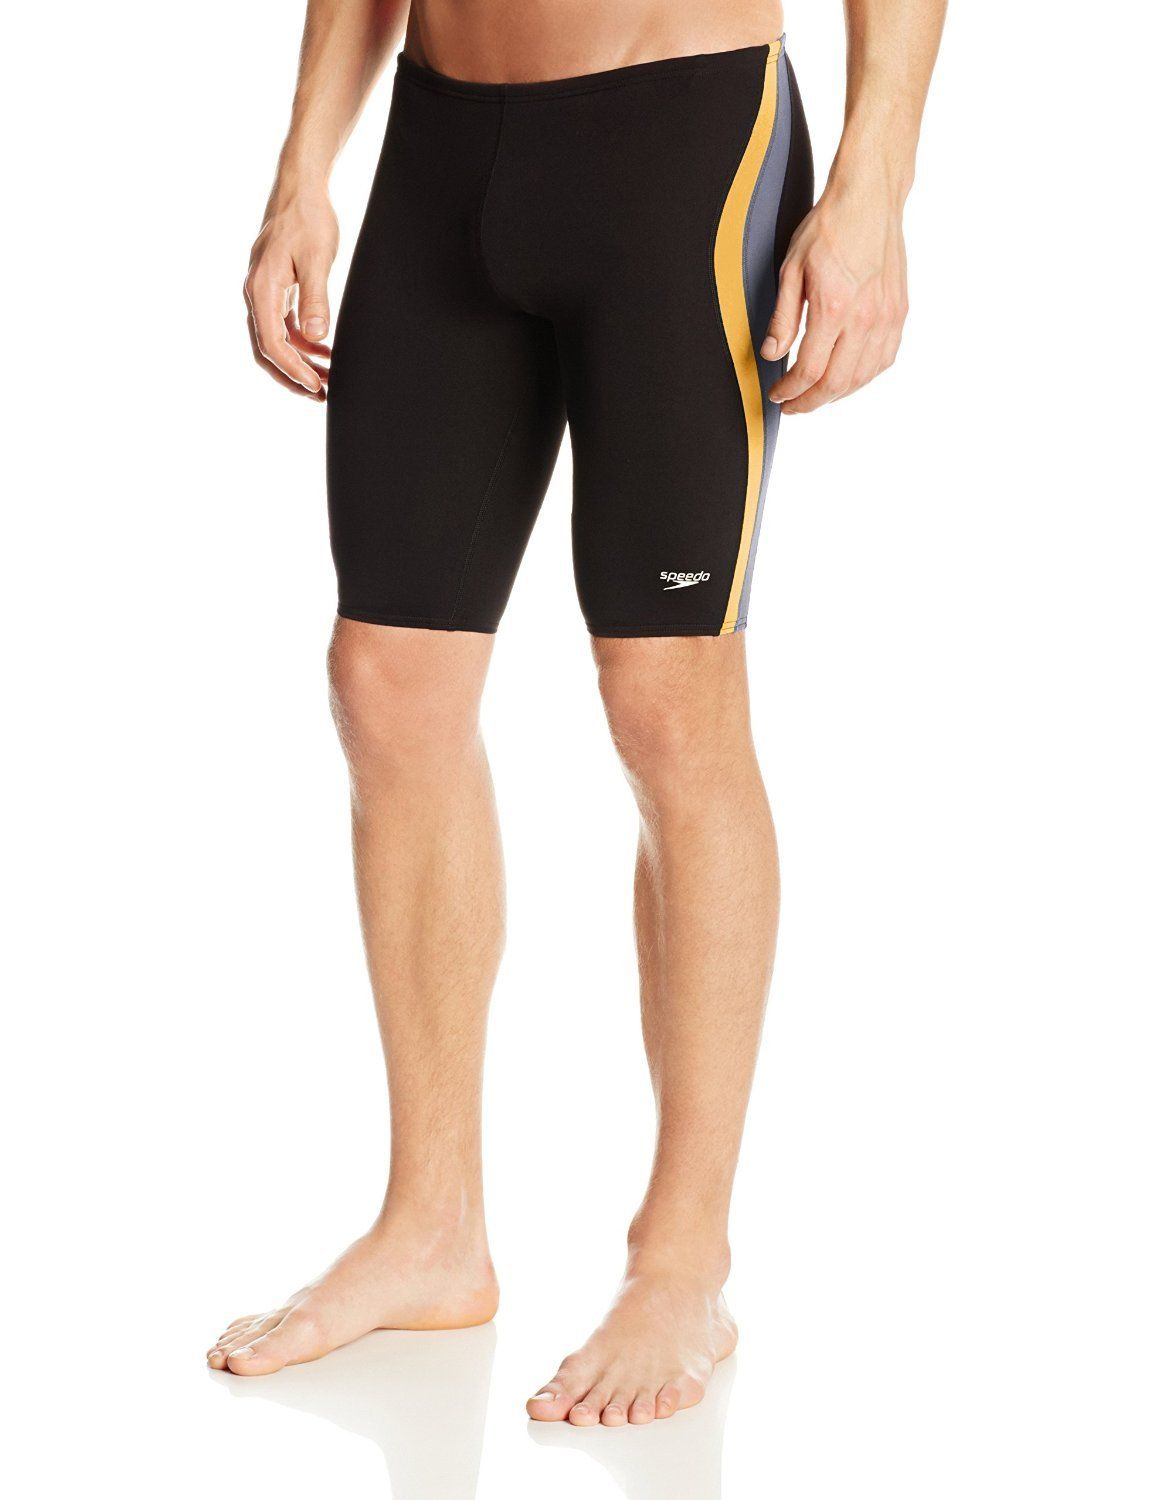 Speedo Men's Boy's Endurance Lite Quark Splice Swimsuit Jammer 8051366